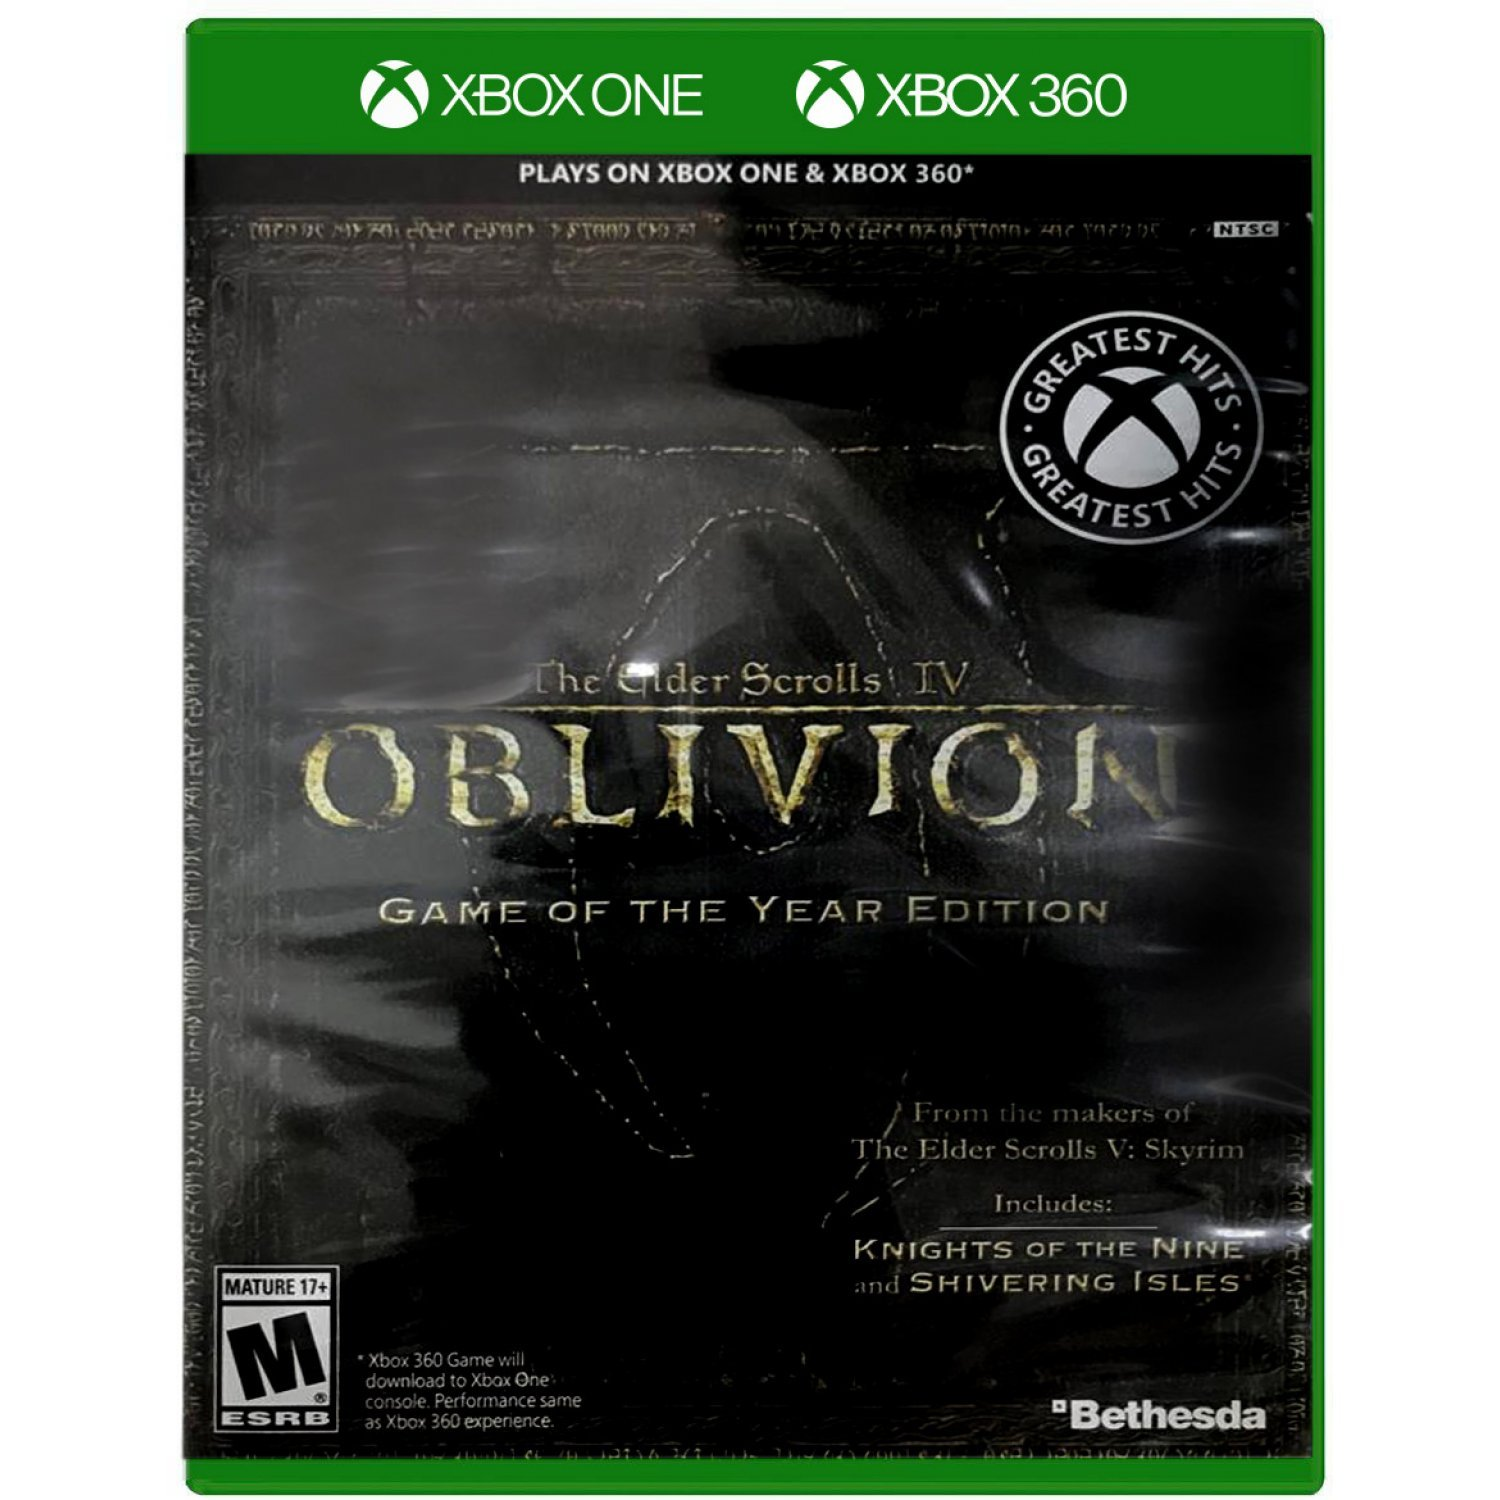 oblivion game of the year edition xbox 360 download